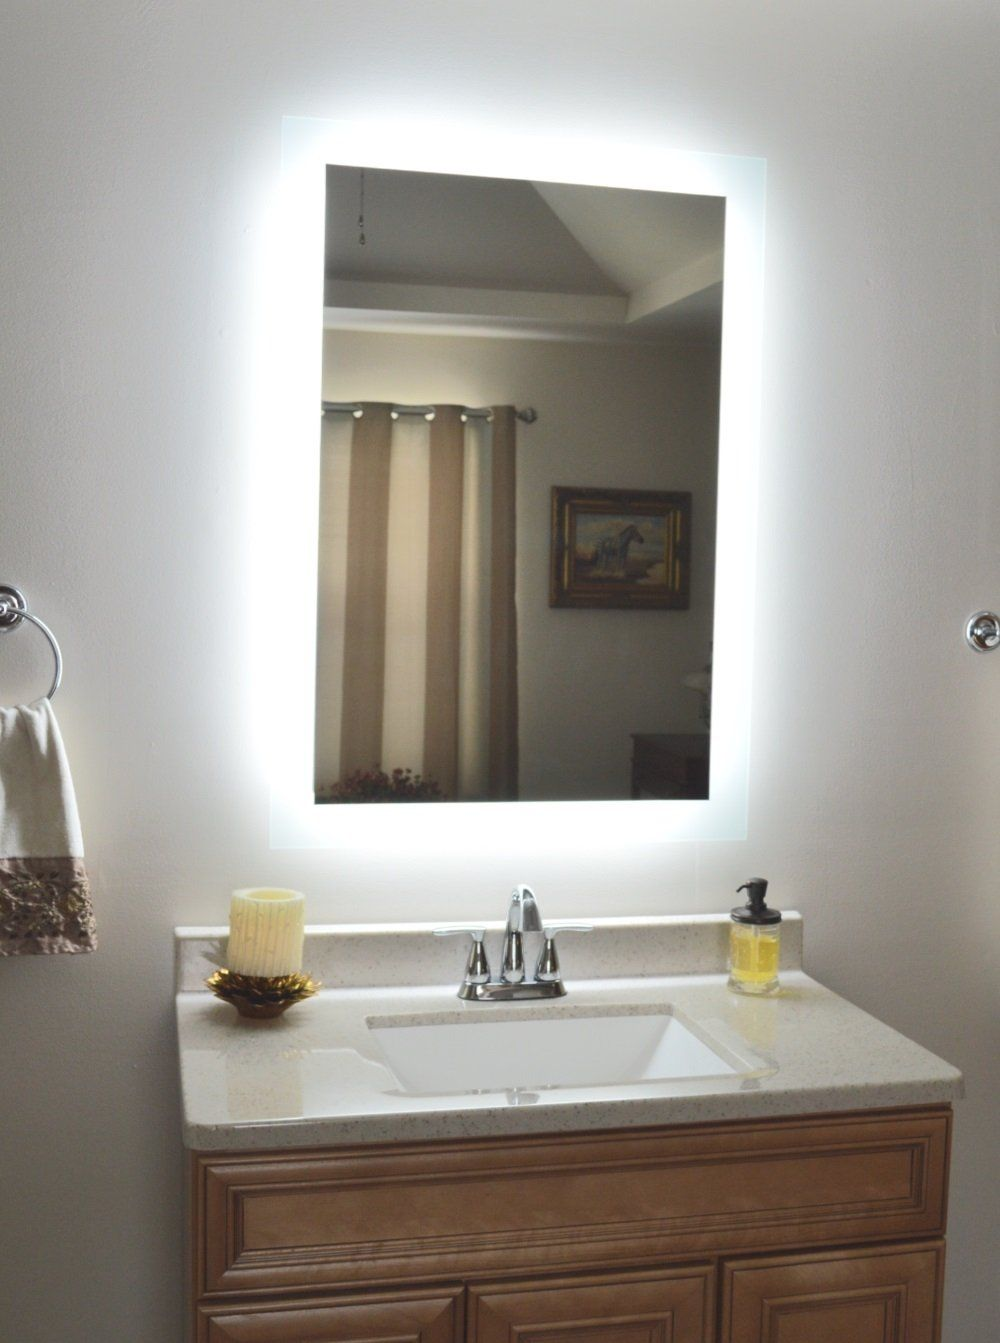 Side Lighted Led Bathroom Vanity Mirror 20 Wide X 28 Tall Rectangular Wall Mounted Lighted Vanity Mirror Backlit Bathroom Mirror Mirror